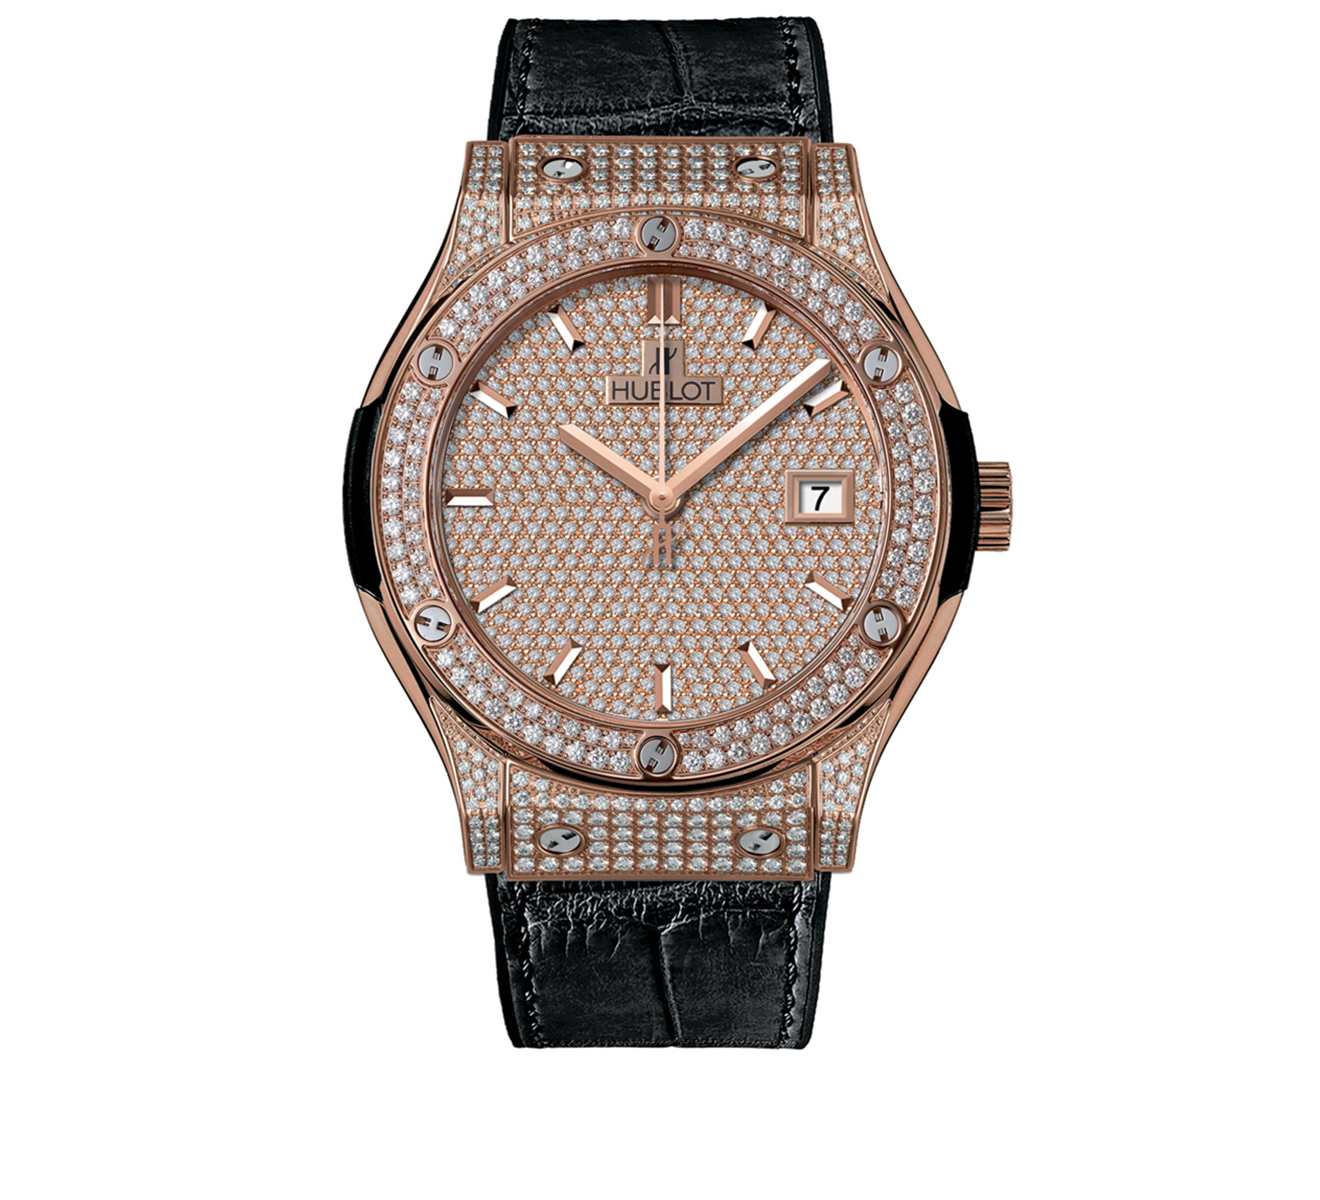 Часы King Gold Full Pave HUBLOT Classic Fusion 542.OX.9010.LR.1704 - фото 1 – Mercury